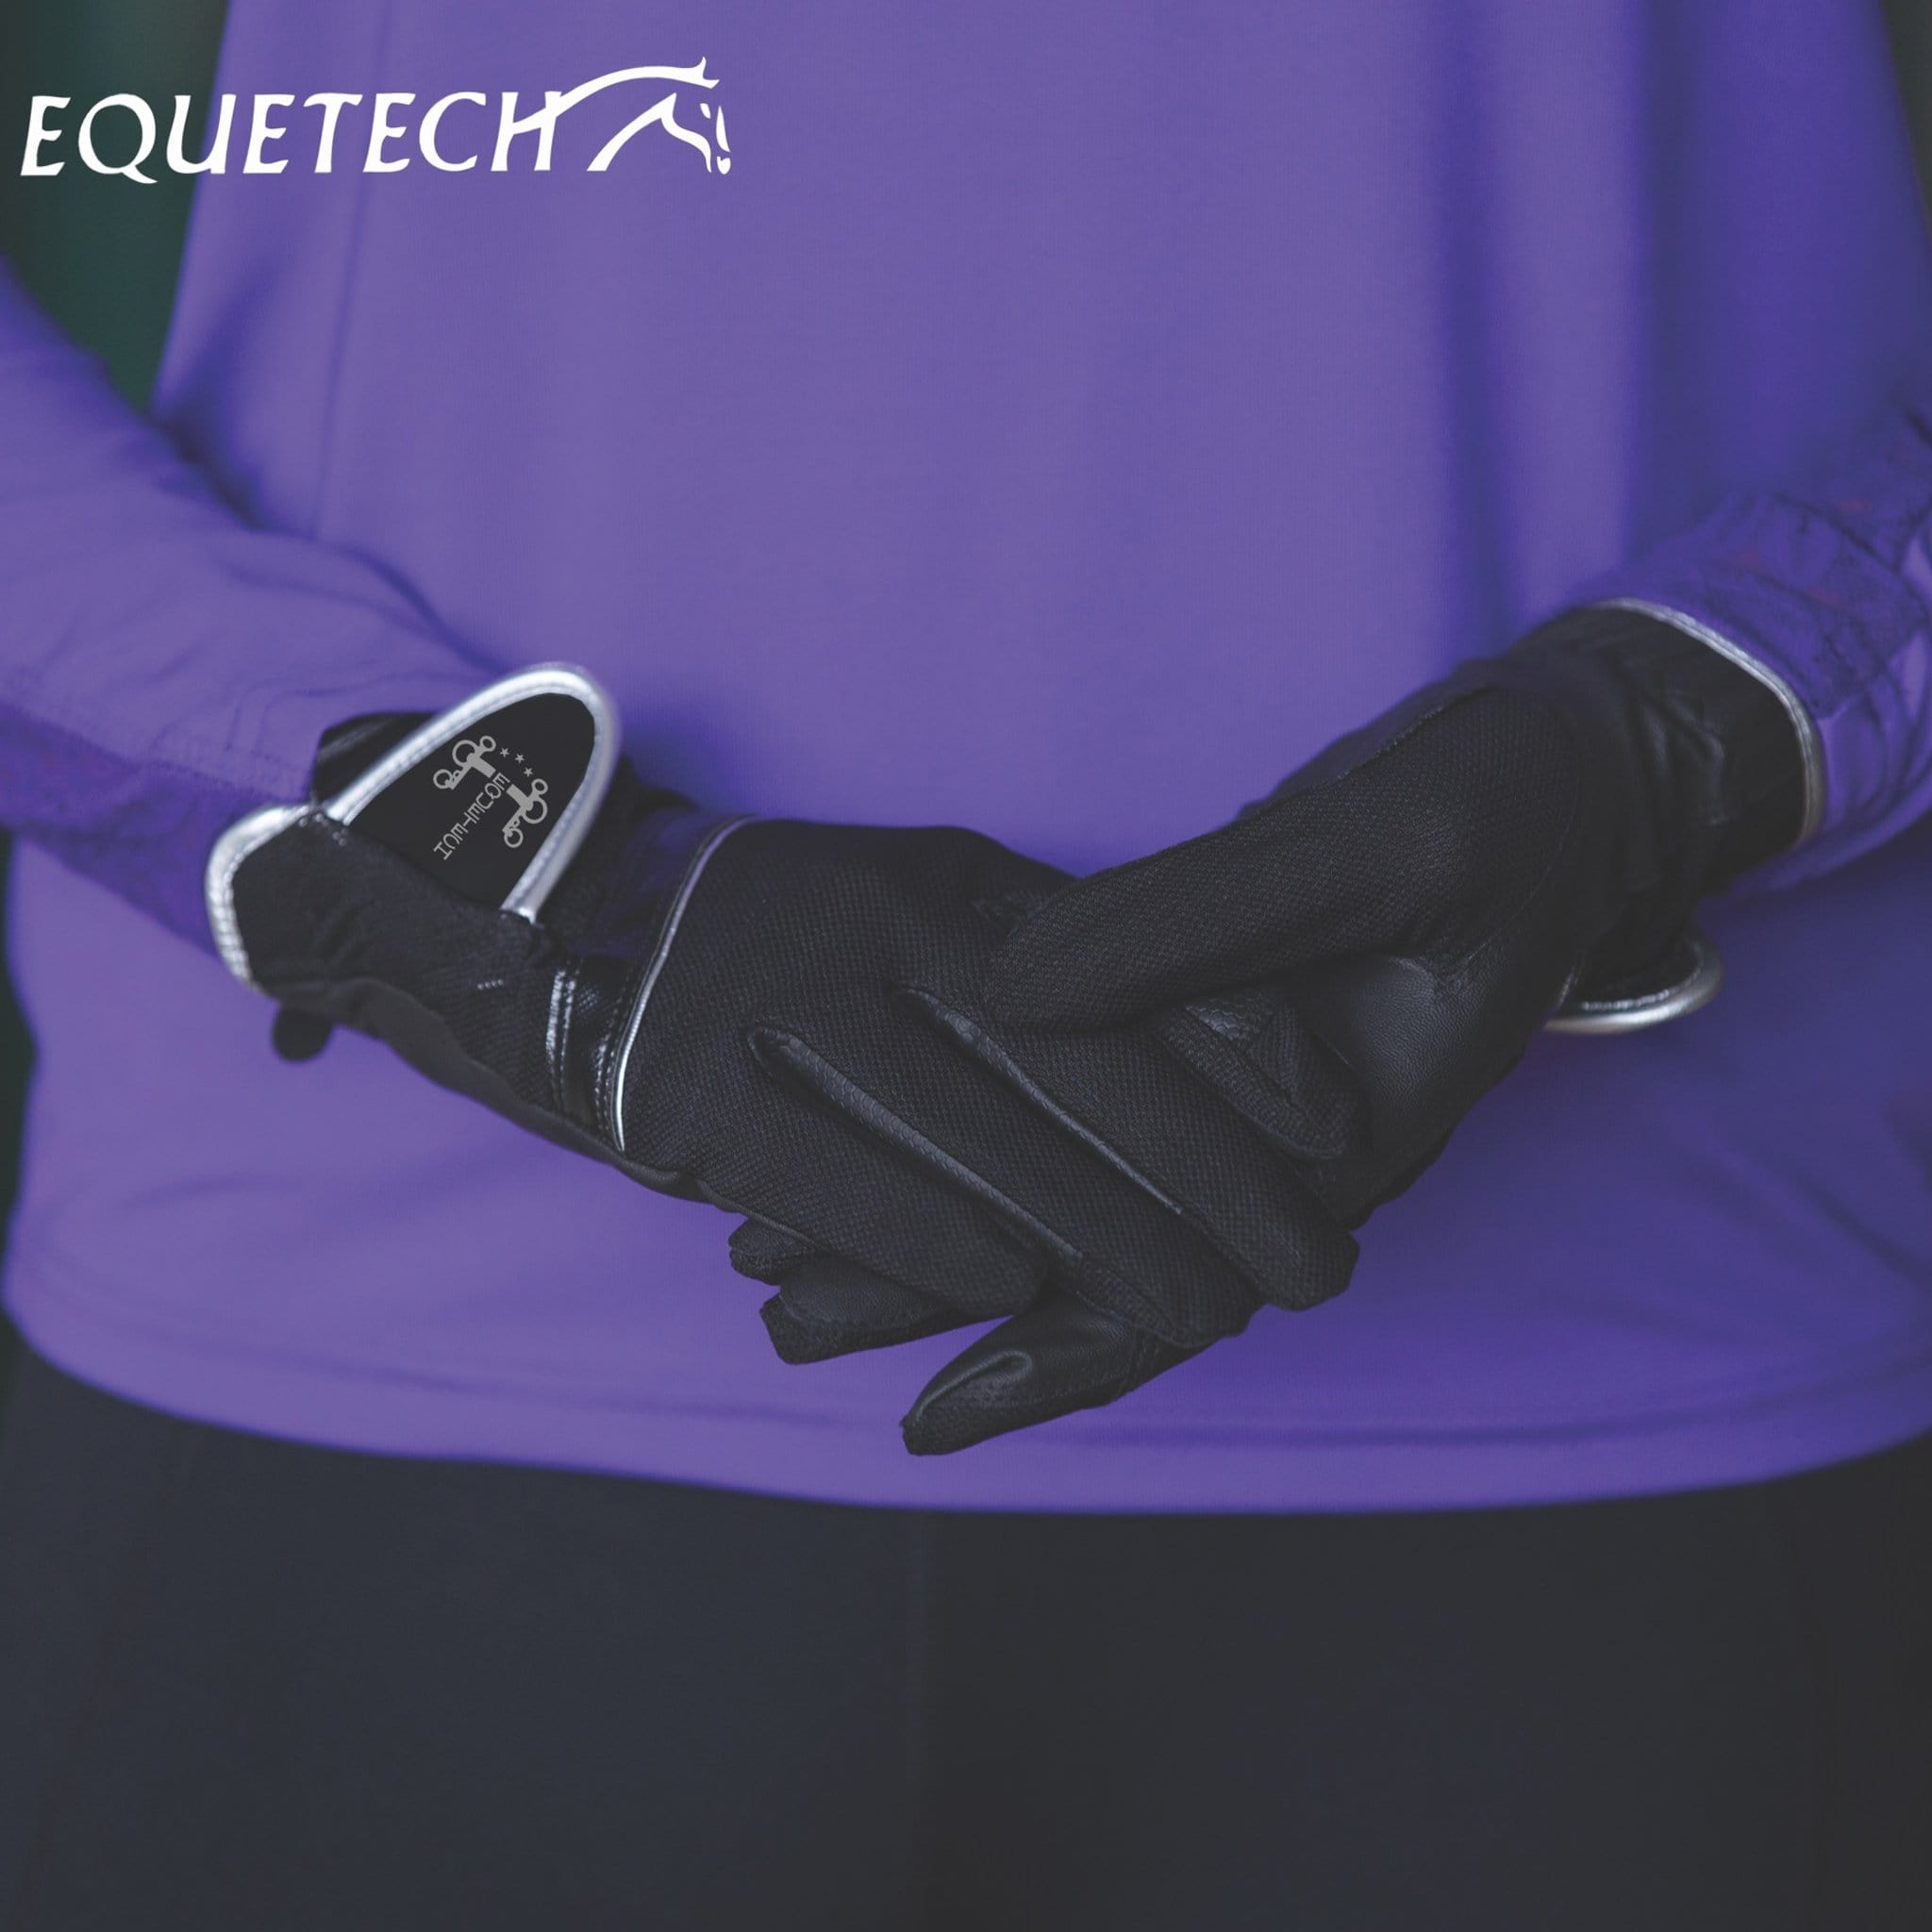 Equetech Airflex Sports Gloves in Black Lifestyle ALG